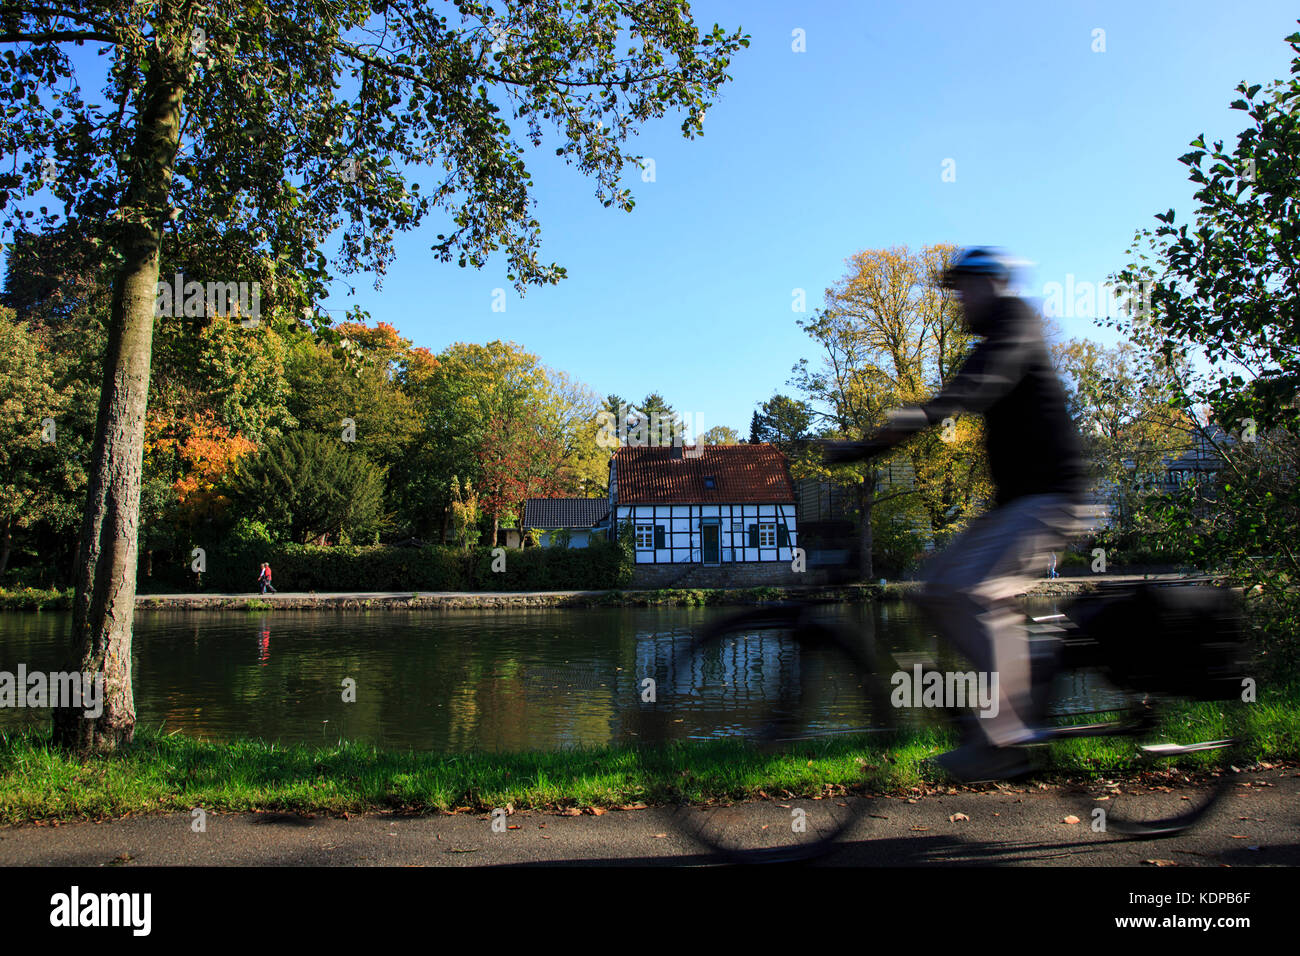 Cyclist on the bank of the Ruhr river, Mülheim an der Ruhr, Germany Stock Photo